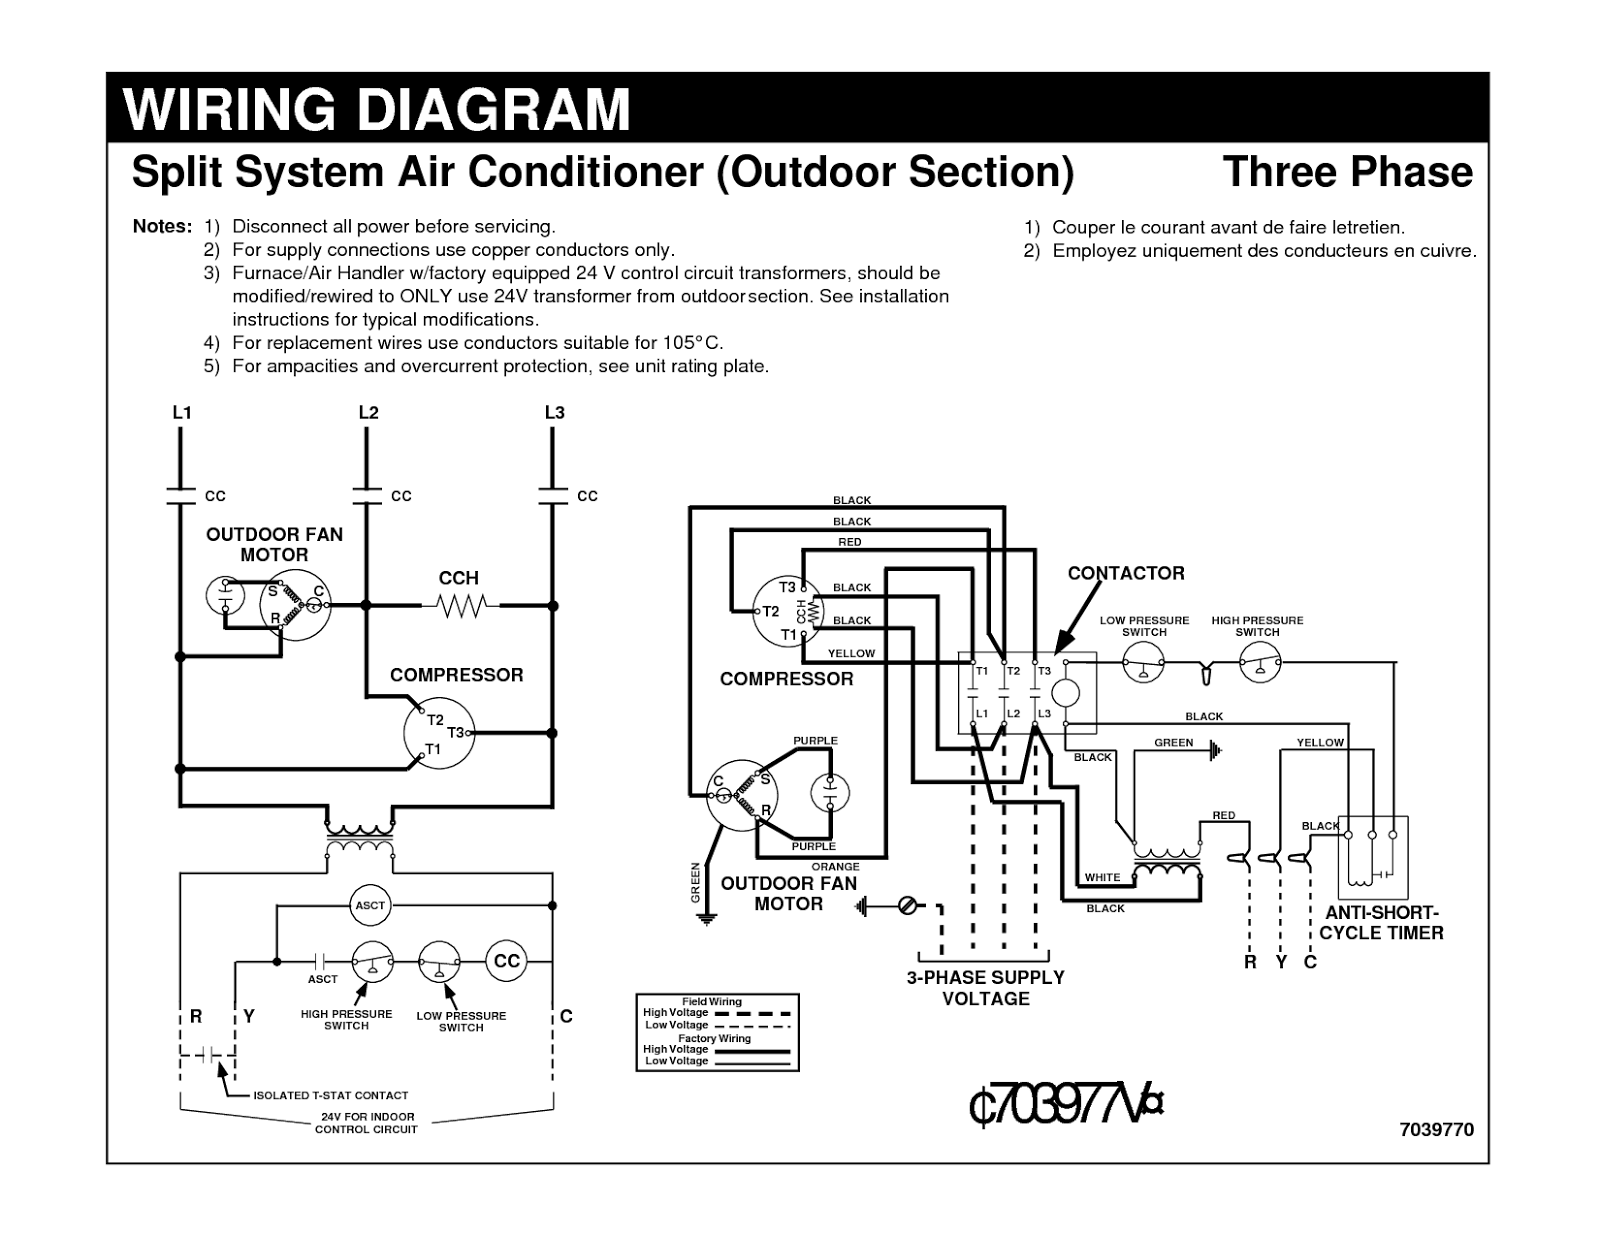 hight resolution of hvac panel wiring wiring diagram detailed hvac fan relay wiring diagram hvac panel wiring trusted wiring